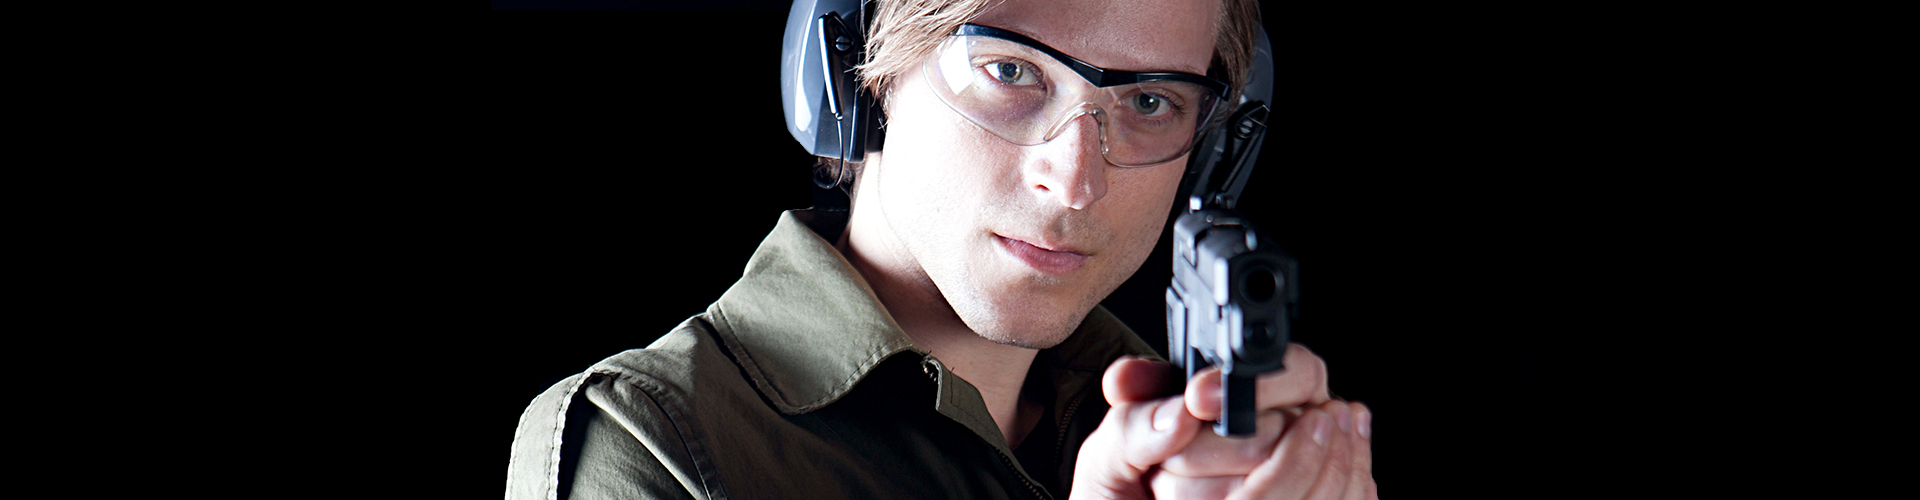 concealed-weapons-permit-courses